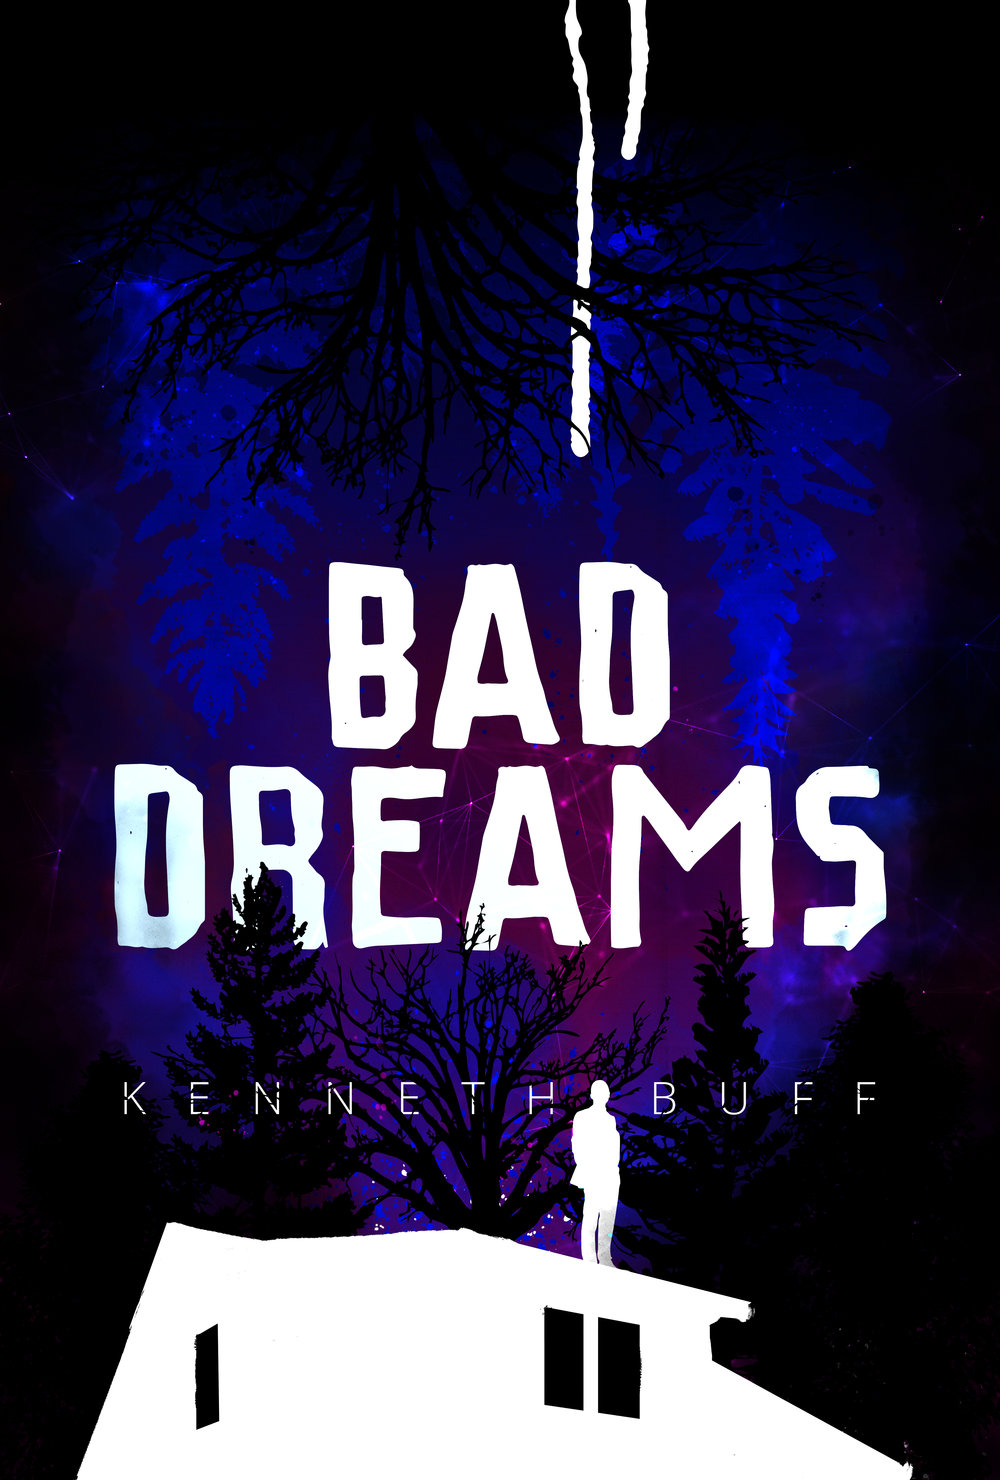 BadDreams_CoverFinal_large.jpg